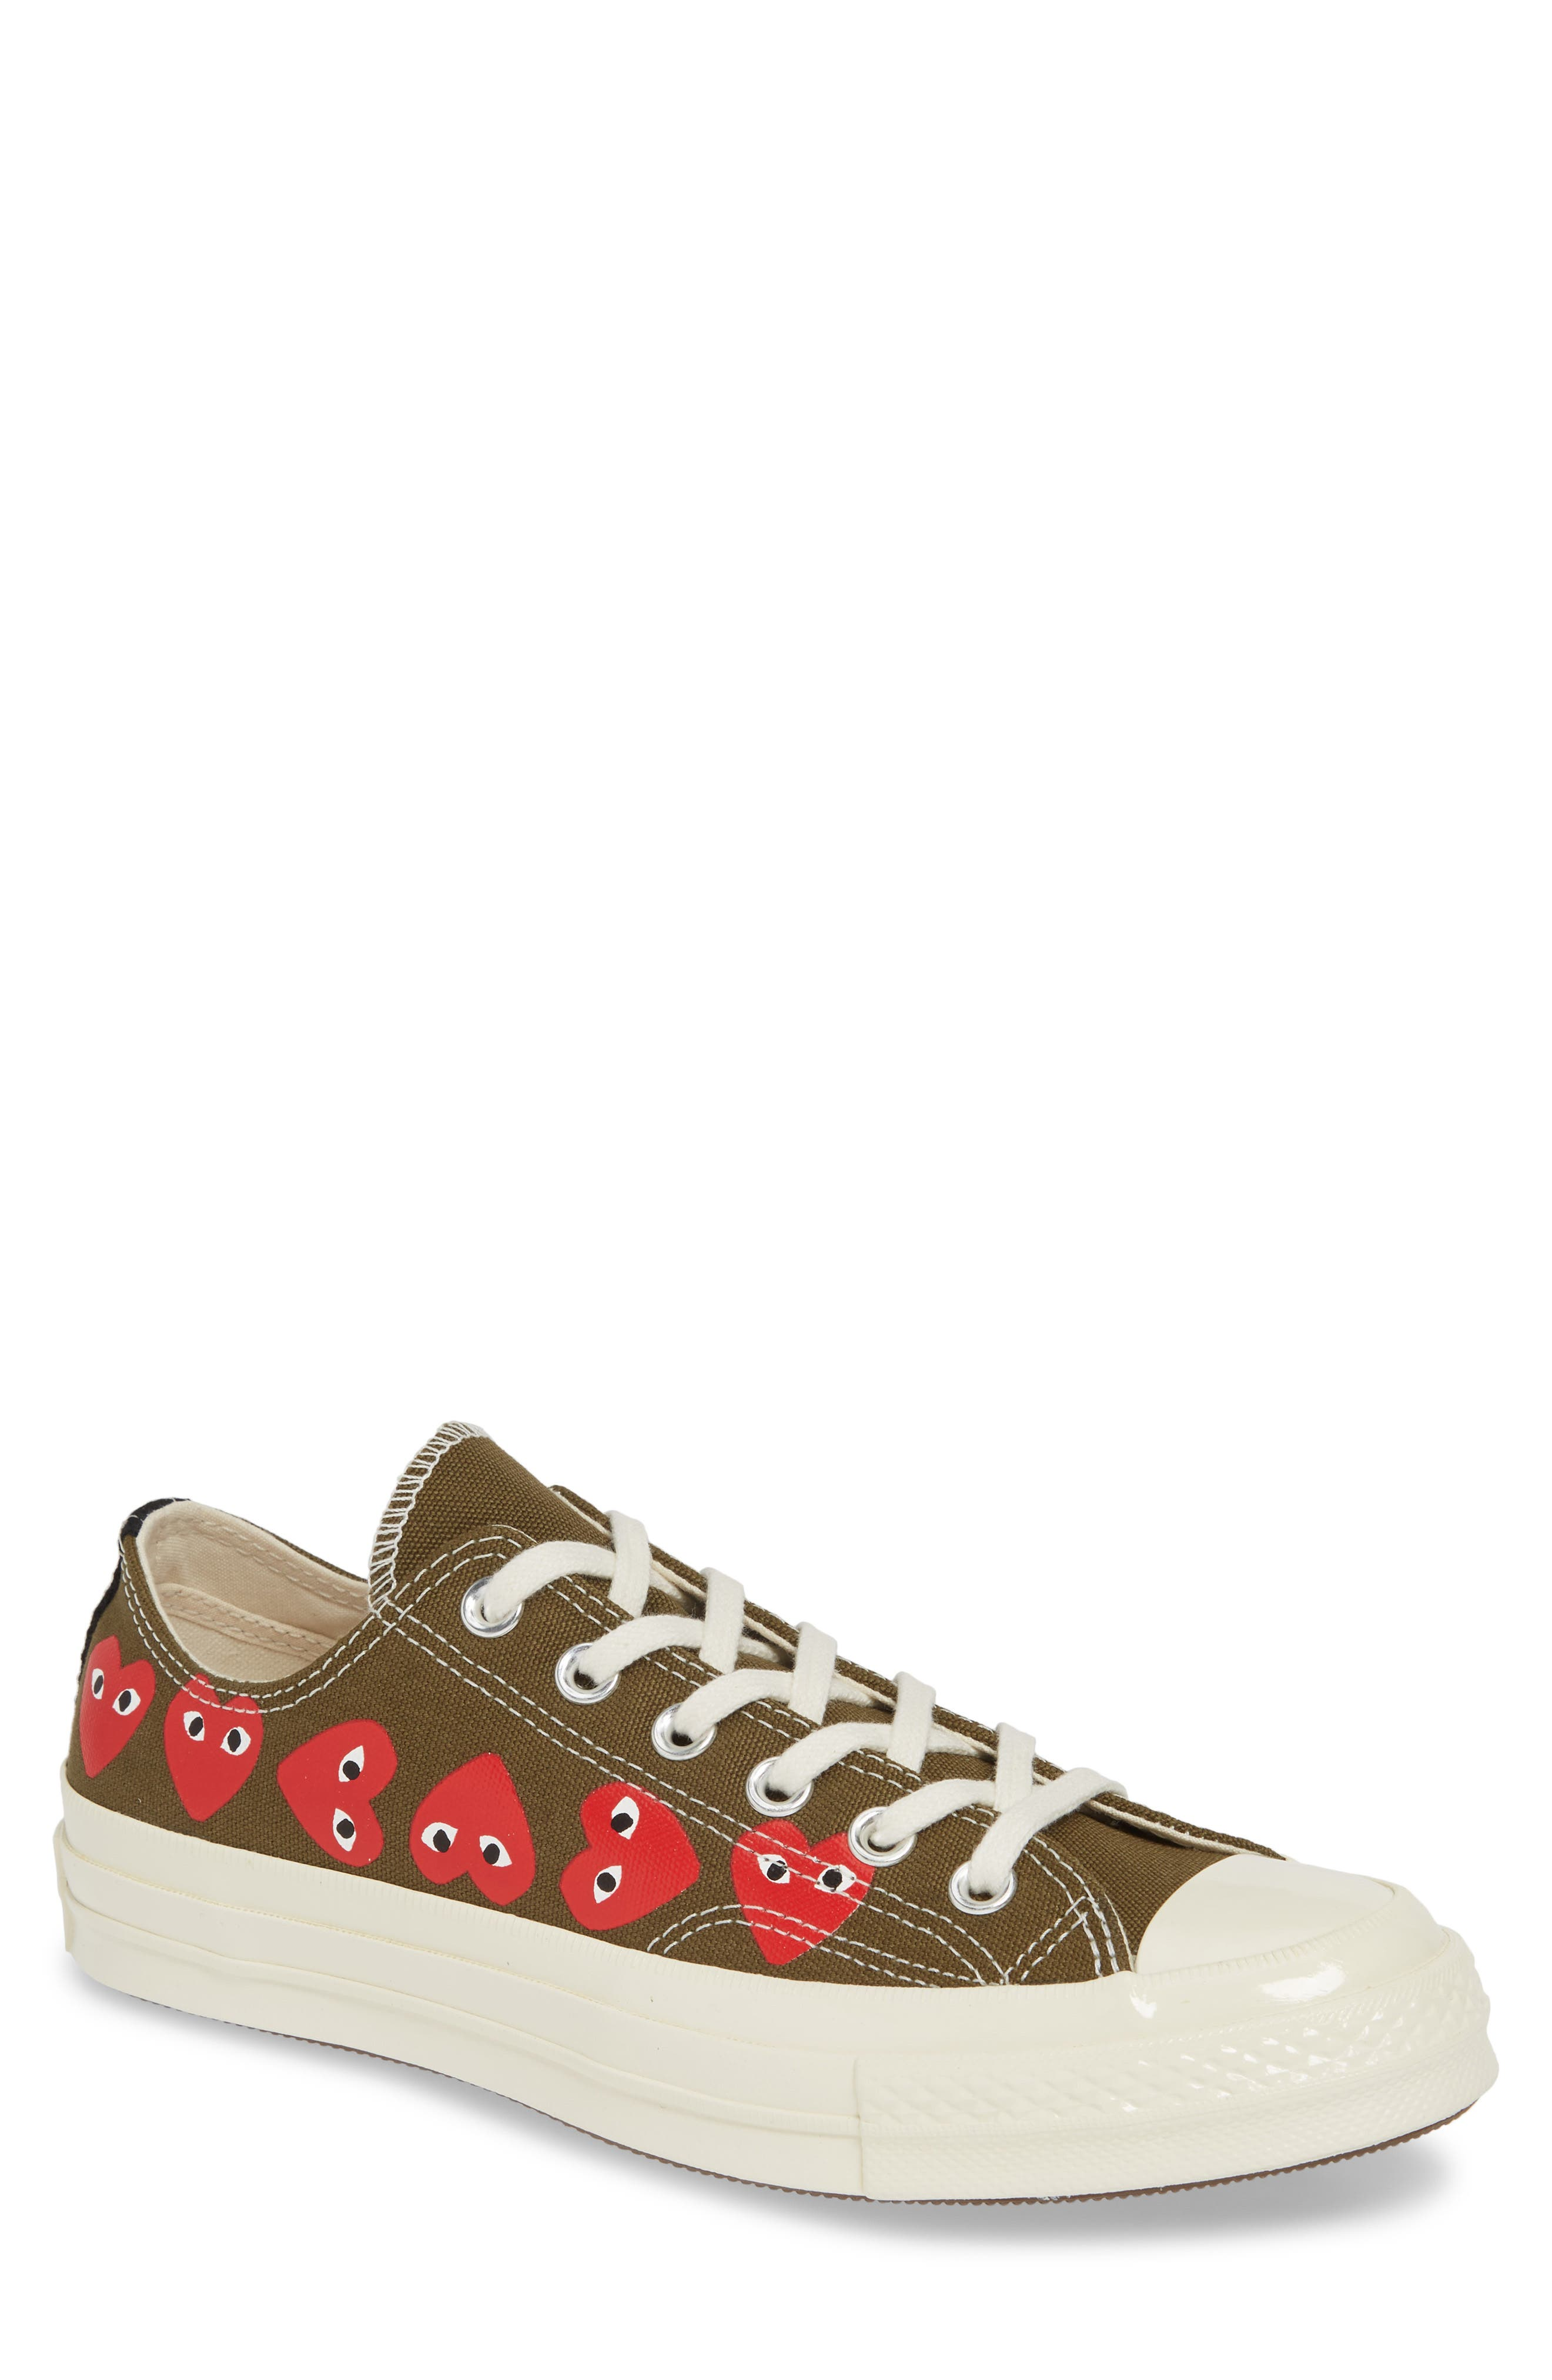 comme des garcons mens sneakers Sale,up to 40